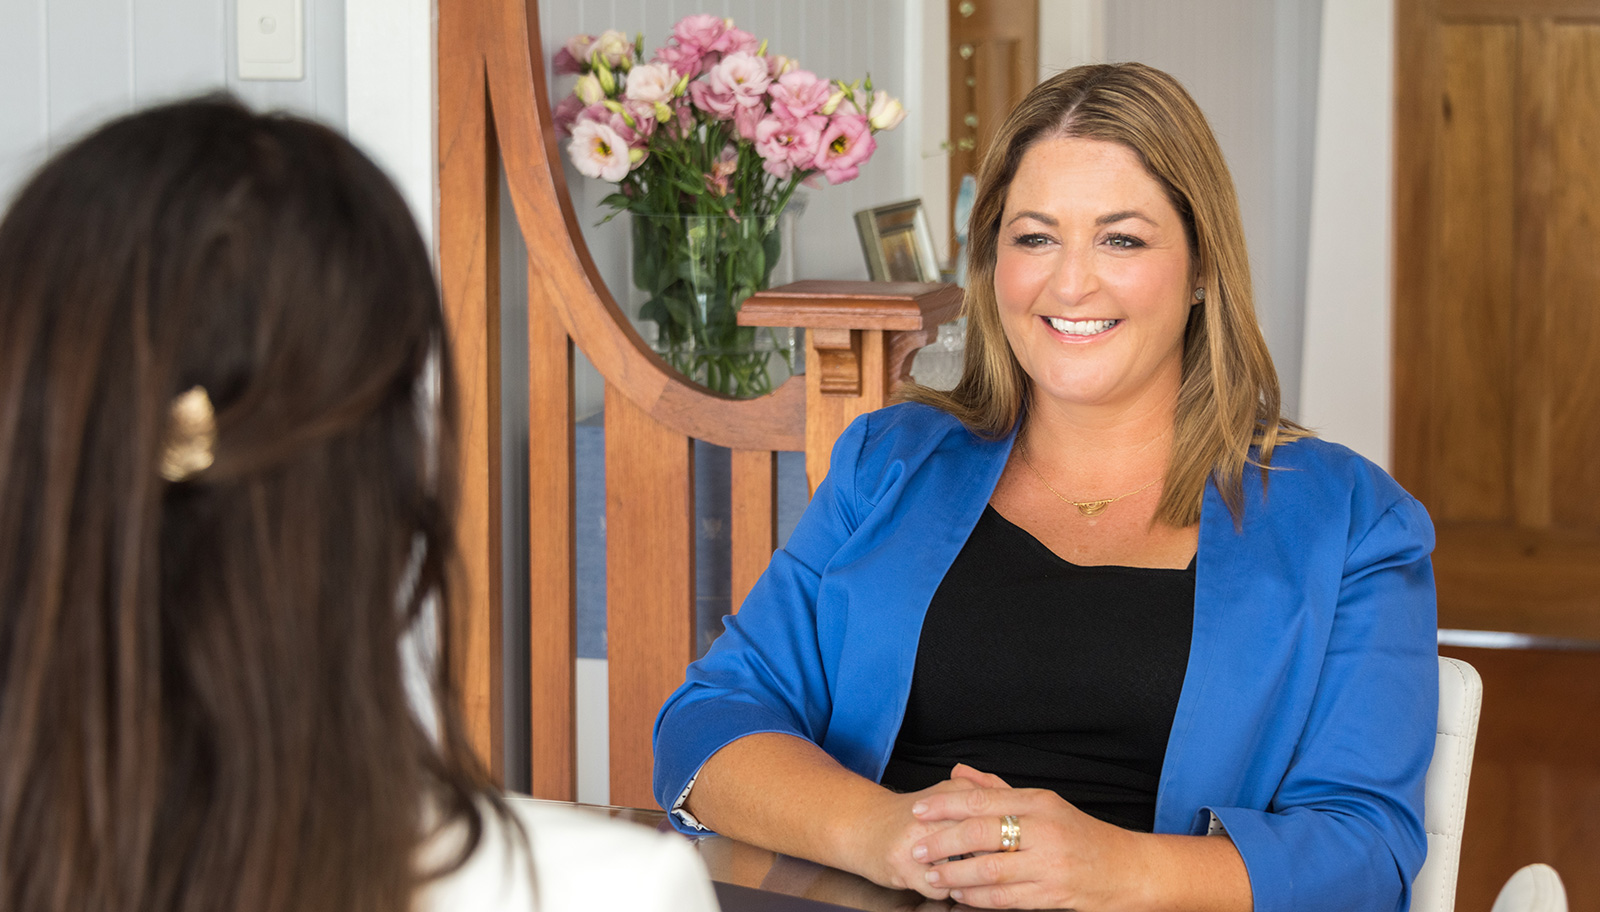 Joanna Boyd Buyers Agent helping a client